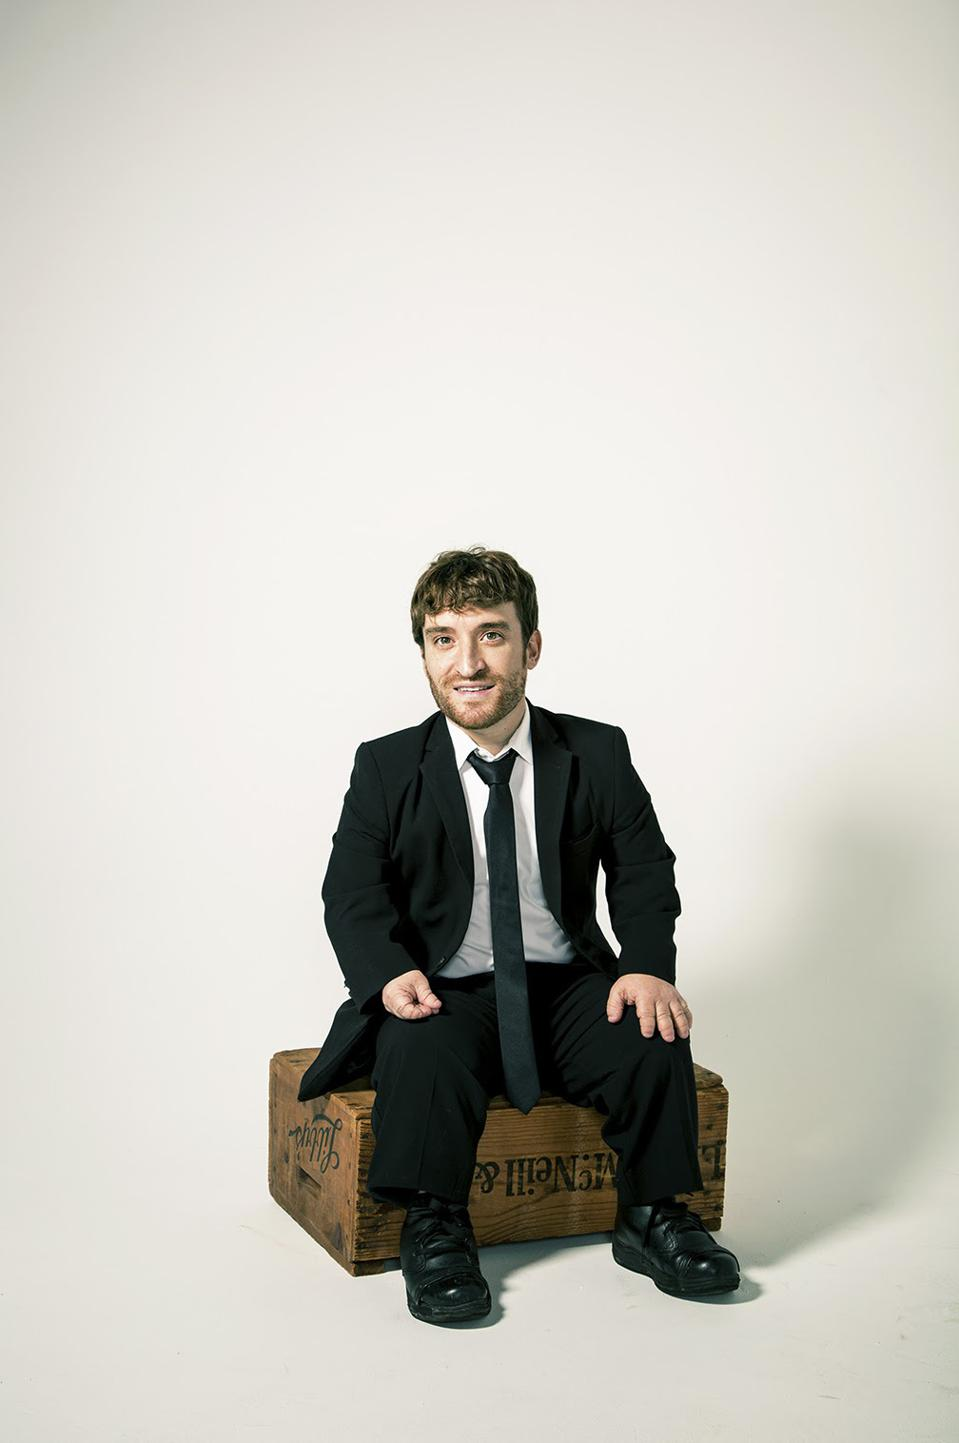 A white man, who is a little person, sits on a wood box wearing a suit.